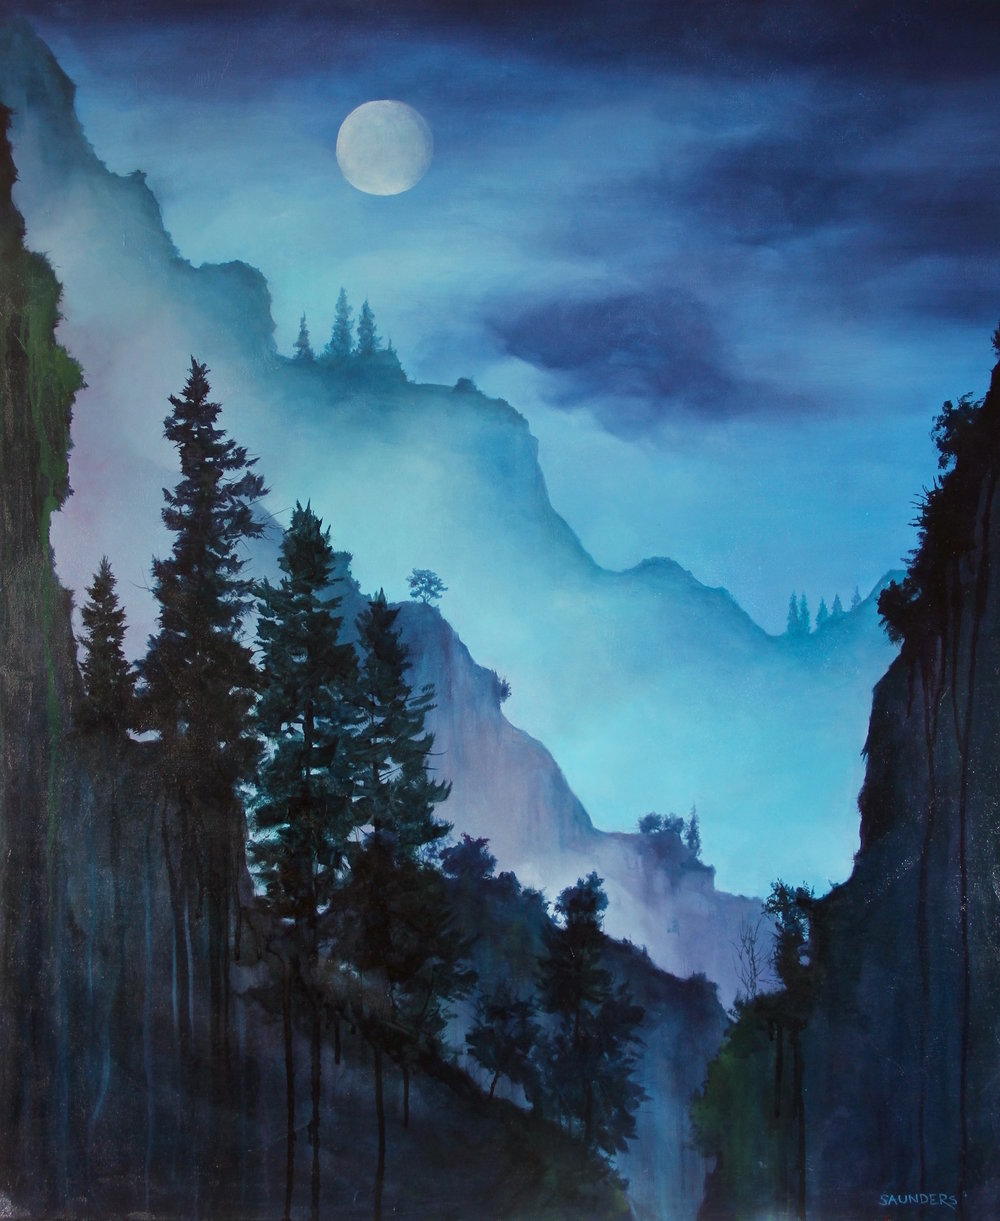 Getting Clear       ($975) Oil- 36 x 30 inches.    Available for purchase.      The night shows a majestic side while the fog moves over the hills.  Everything is alive and in constant motion.  This is when I feel clear and at peace.     contact:david@hawkmerlinstudios.com